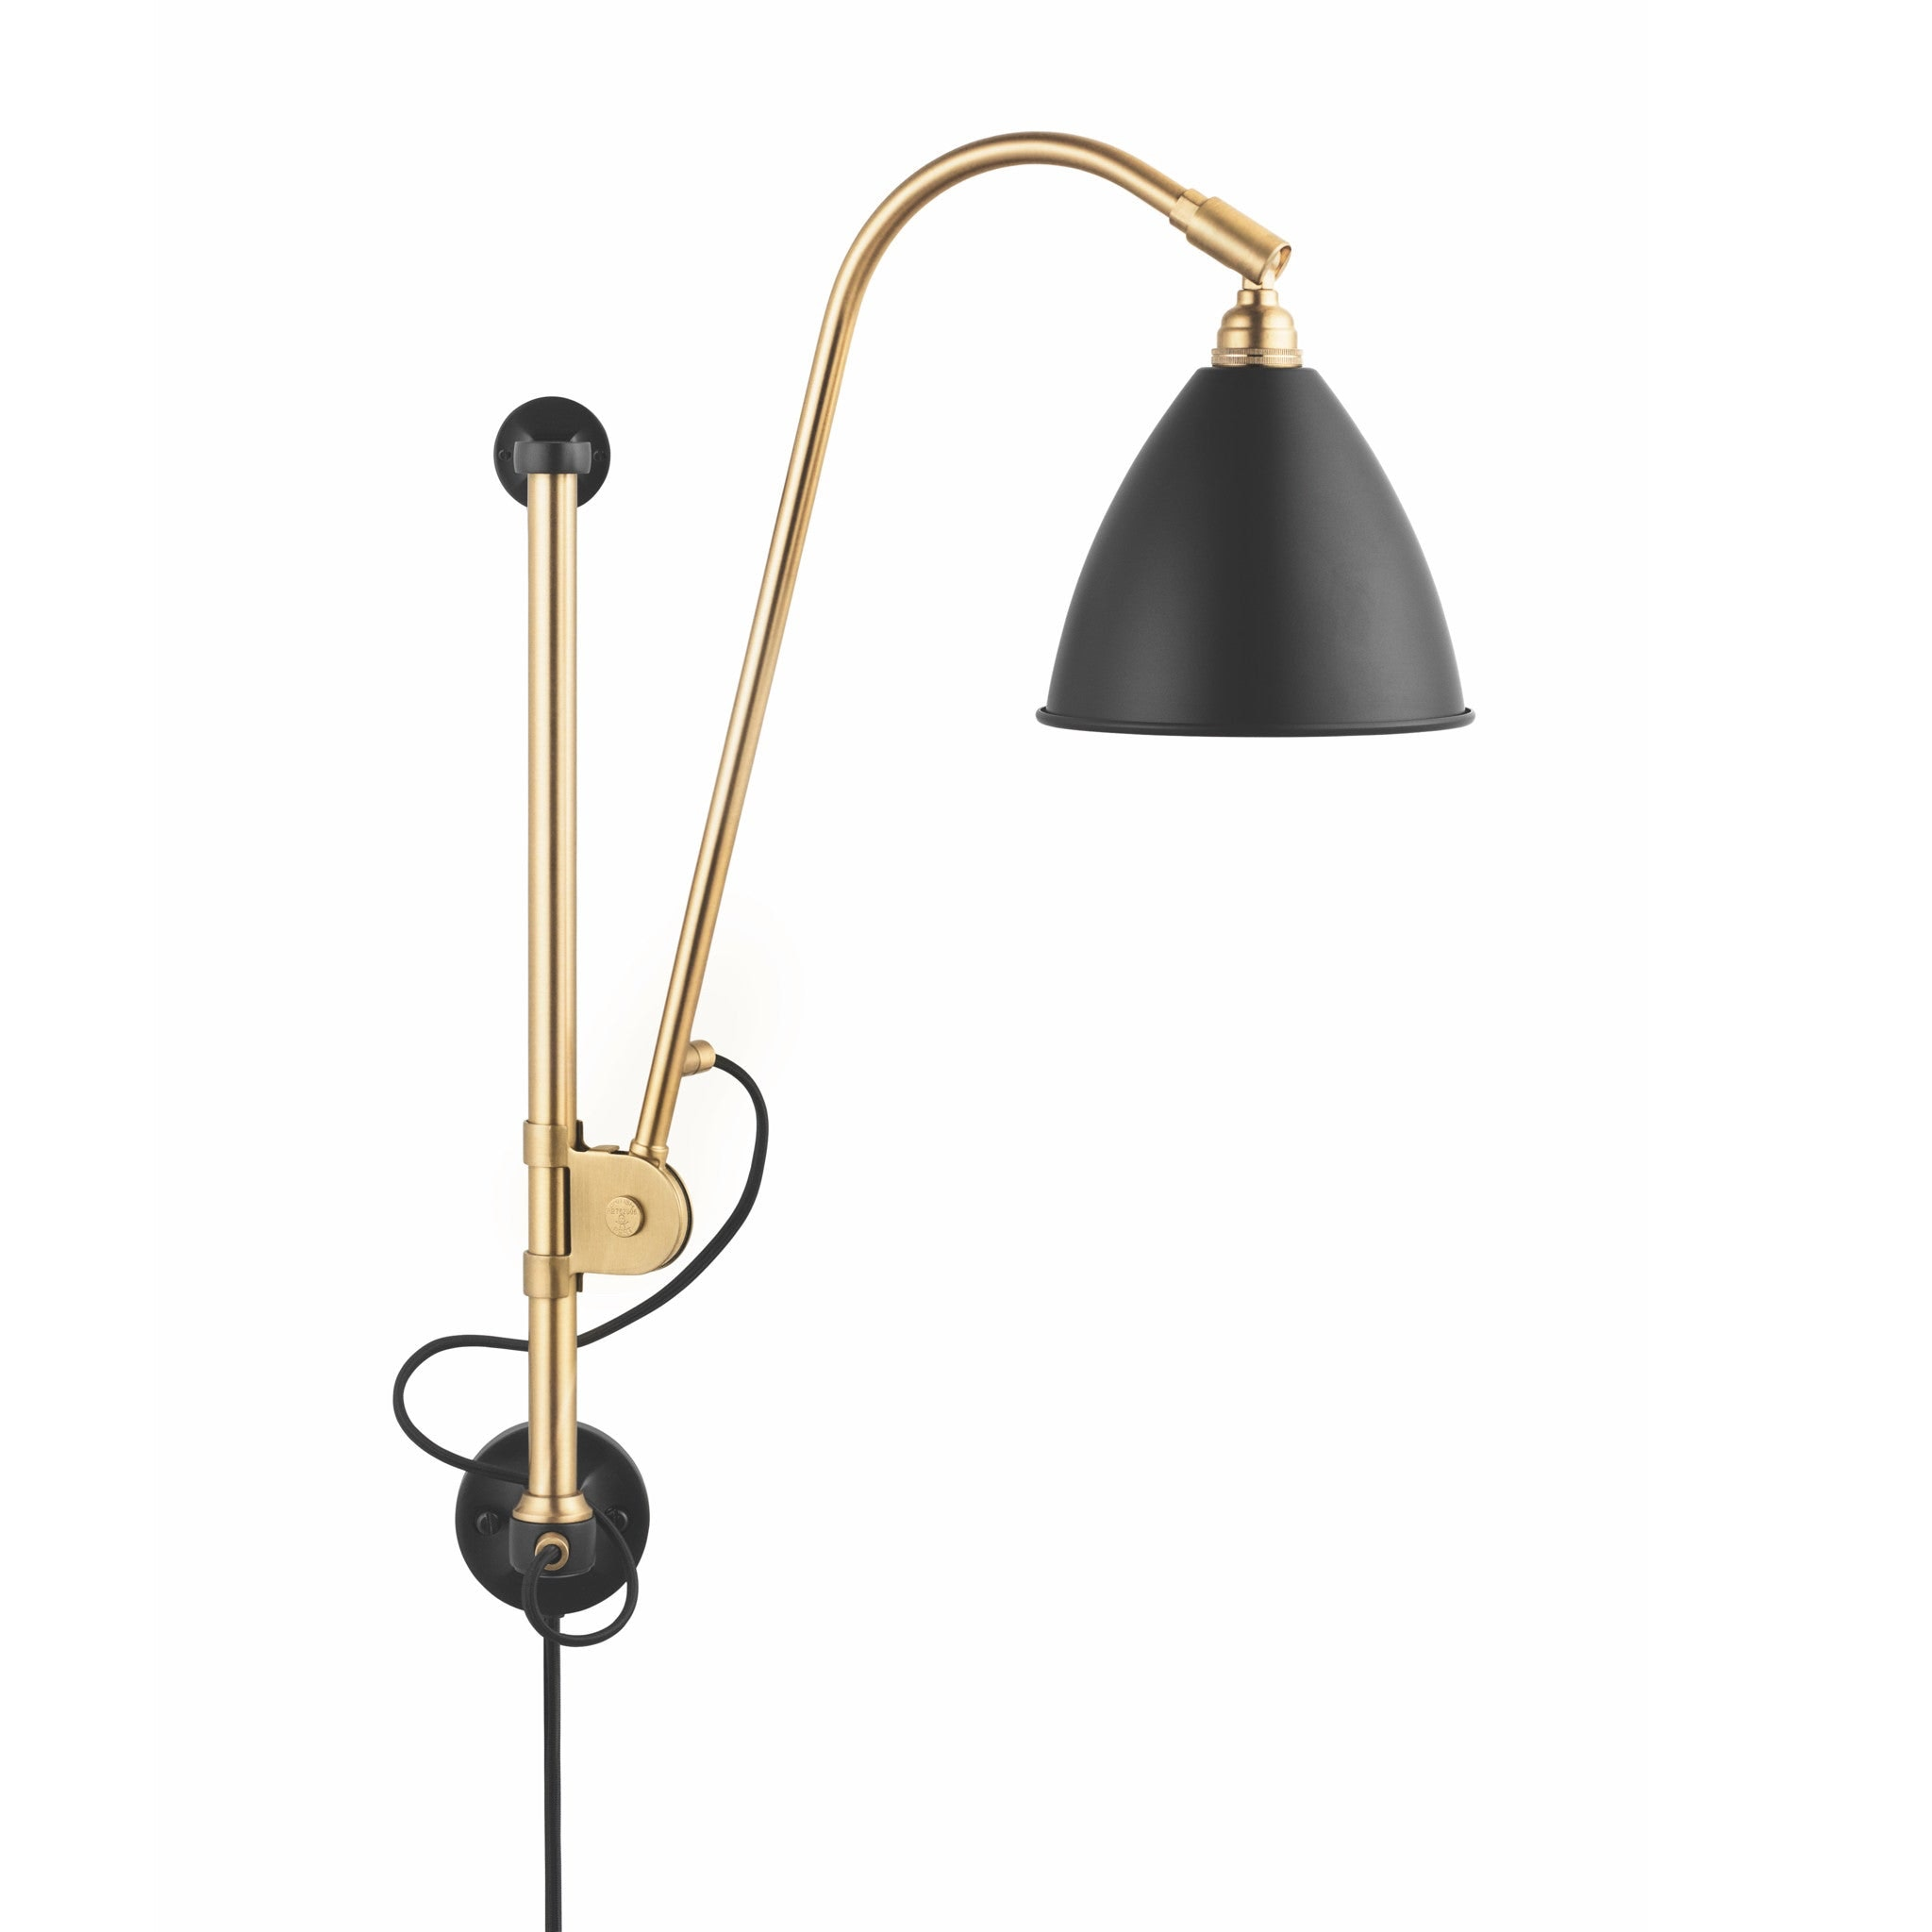 Bestlite BL5 Brass with Cable and Switch by Robert Dudley Best